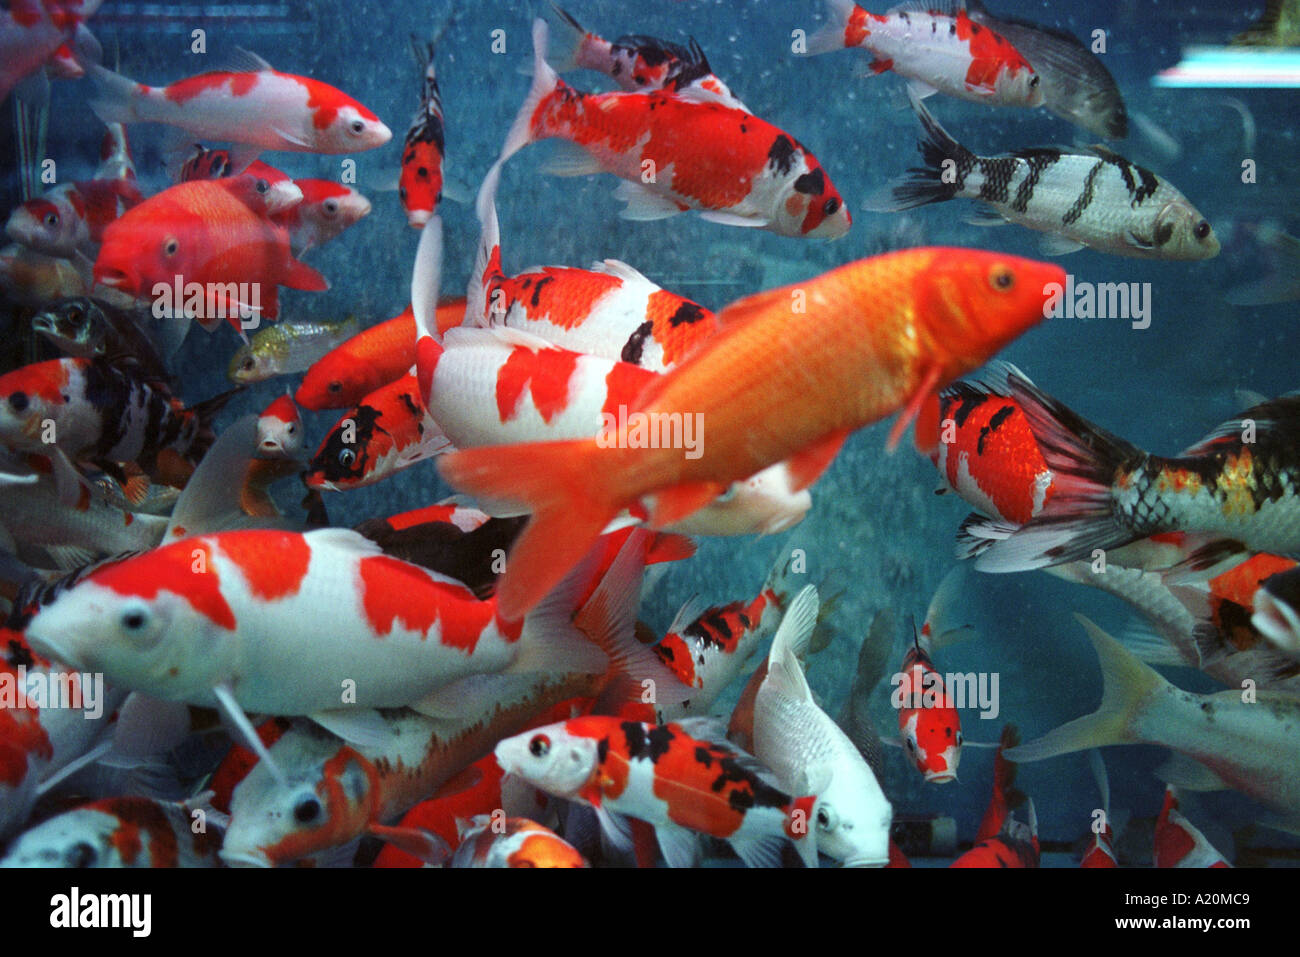 Koi carp fish in aquarium for Koi goldfisch